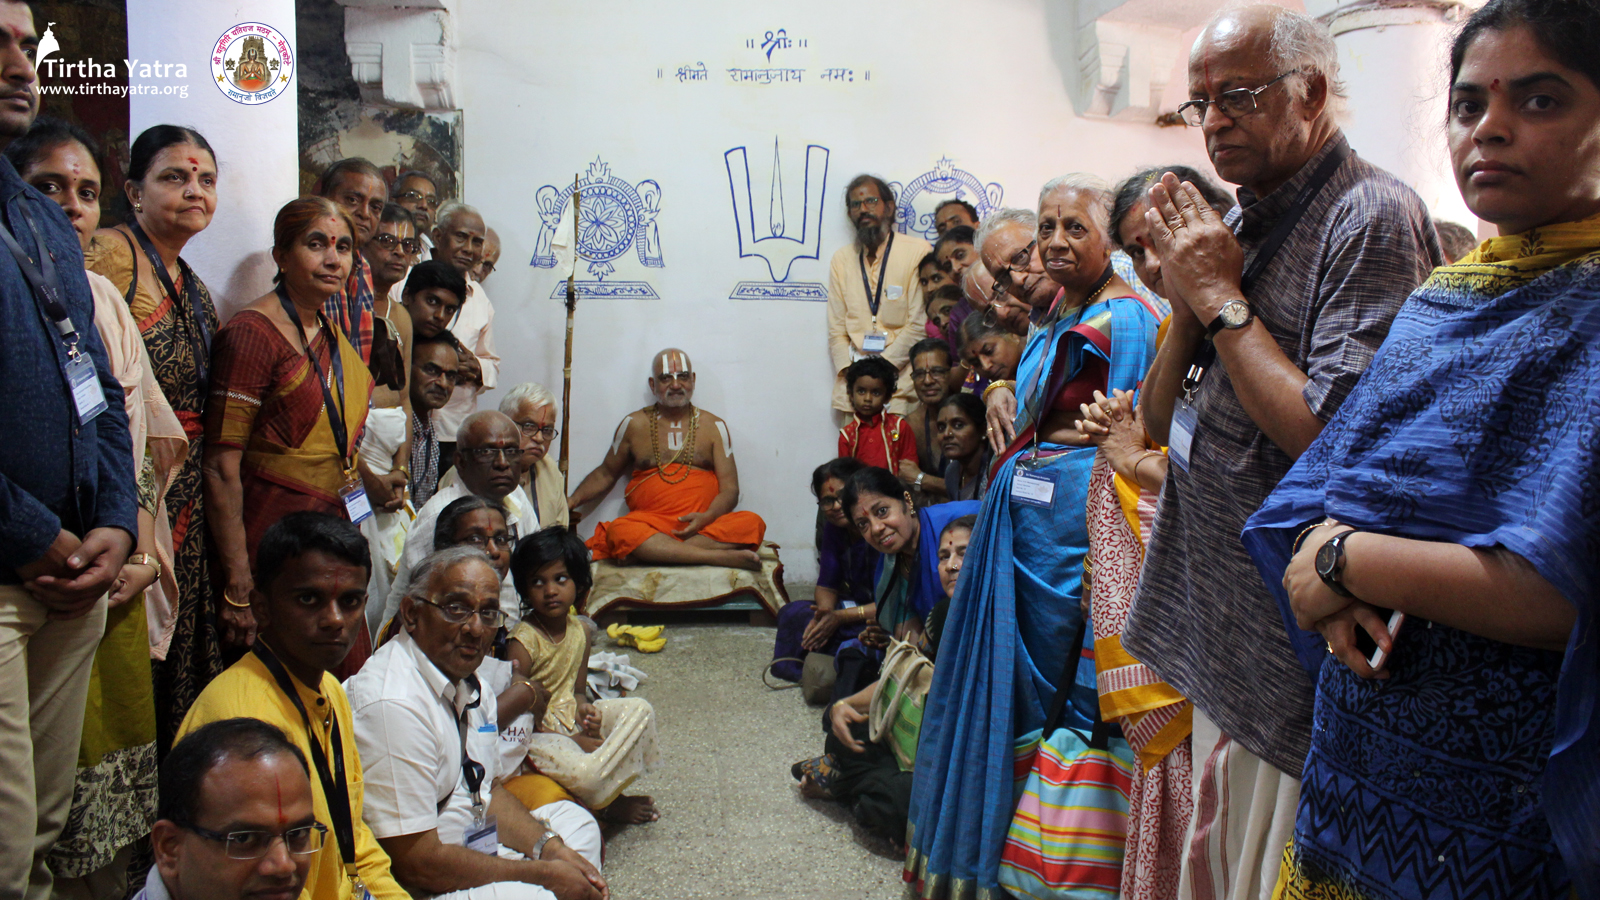 Devotees with His Holiness Sri Yadugiri Yathiraja Jeeyar Swami